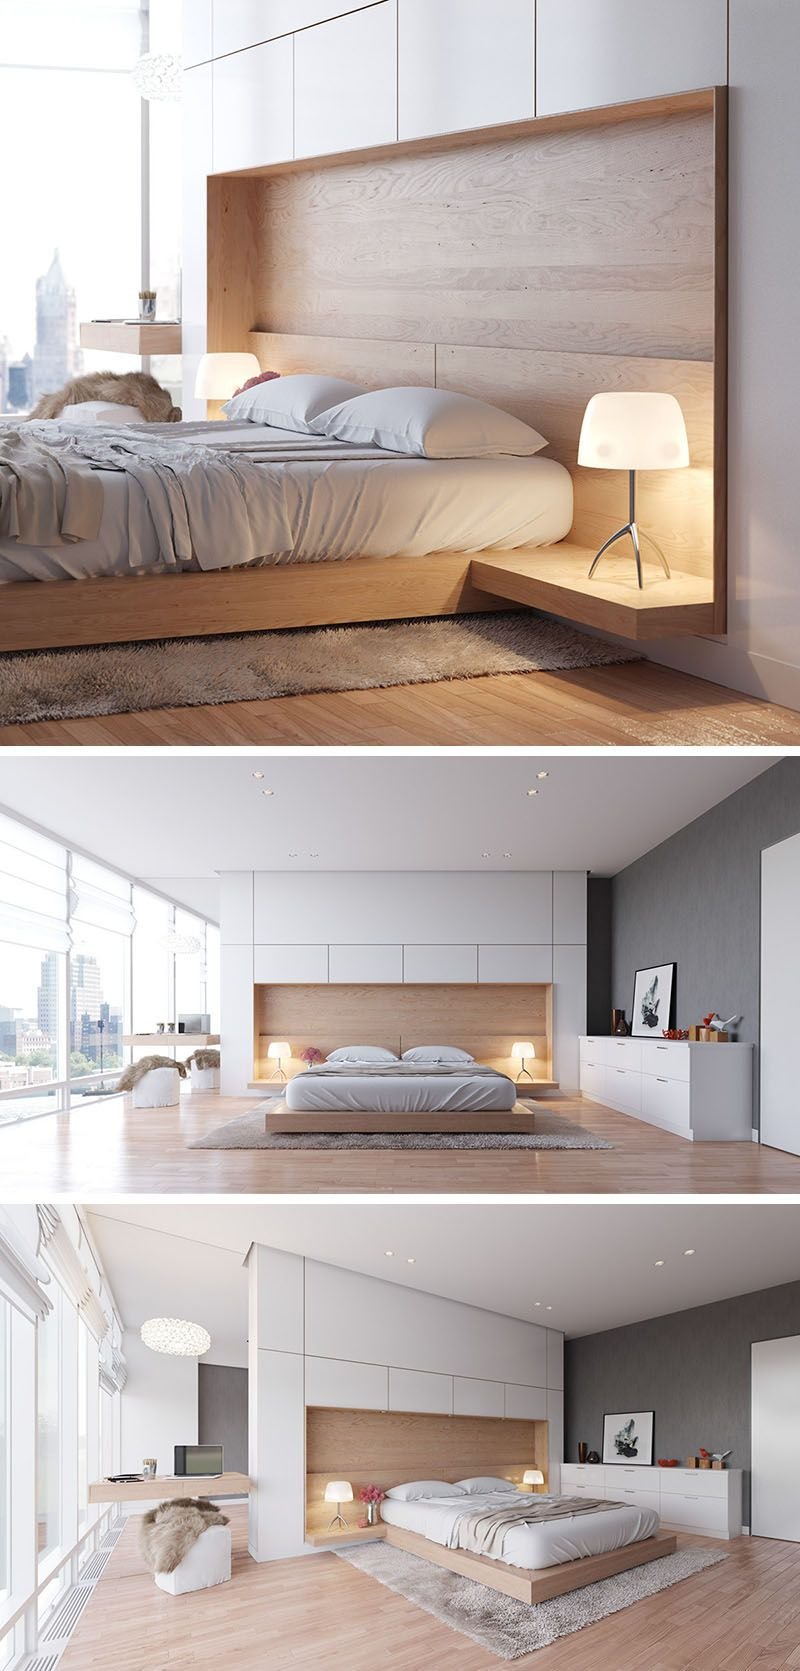 Bedroom Design Idea